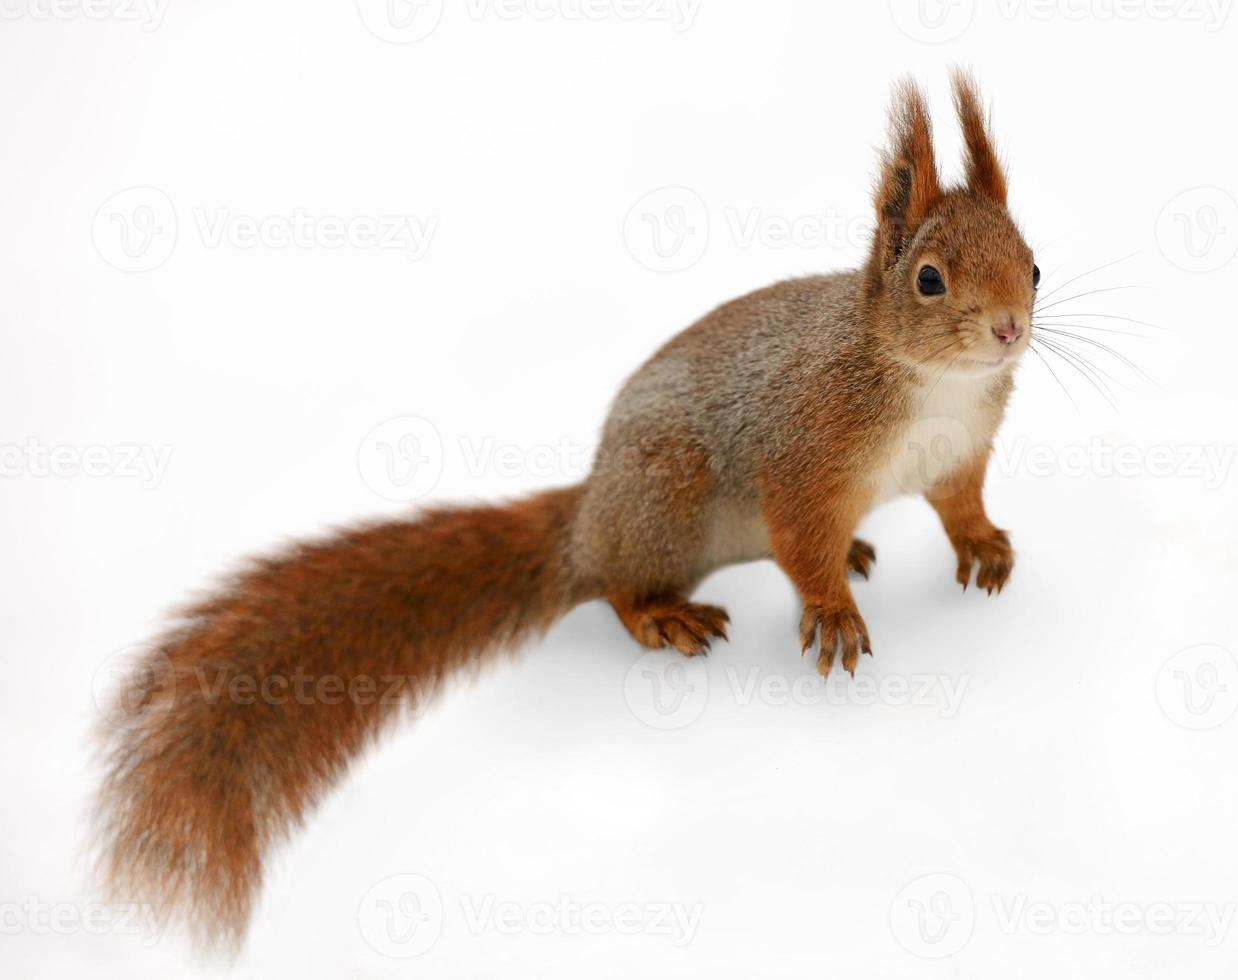 Eurasian red squirrel in front of a white background photo